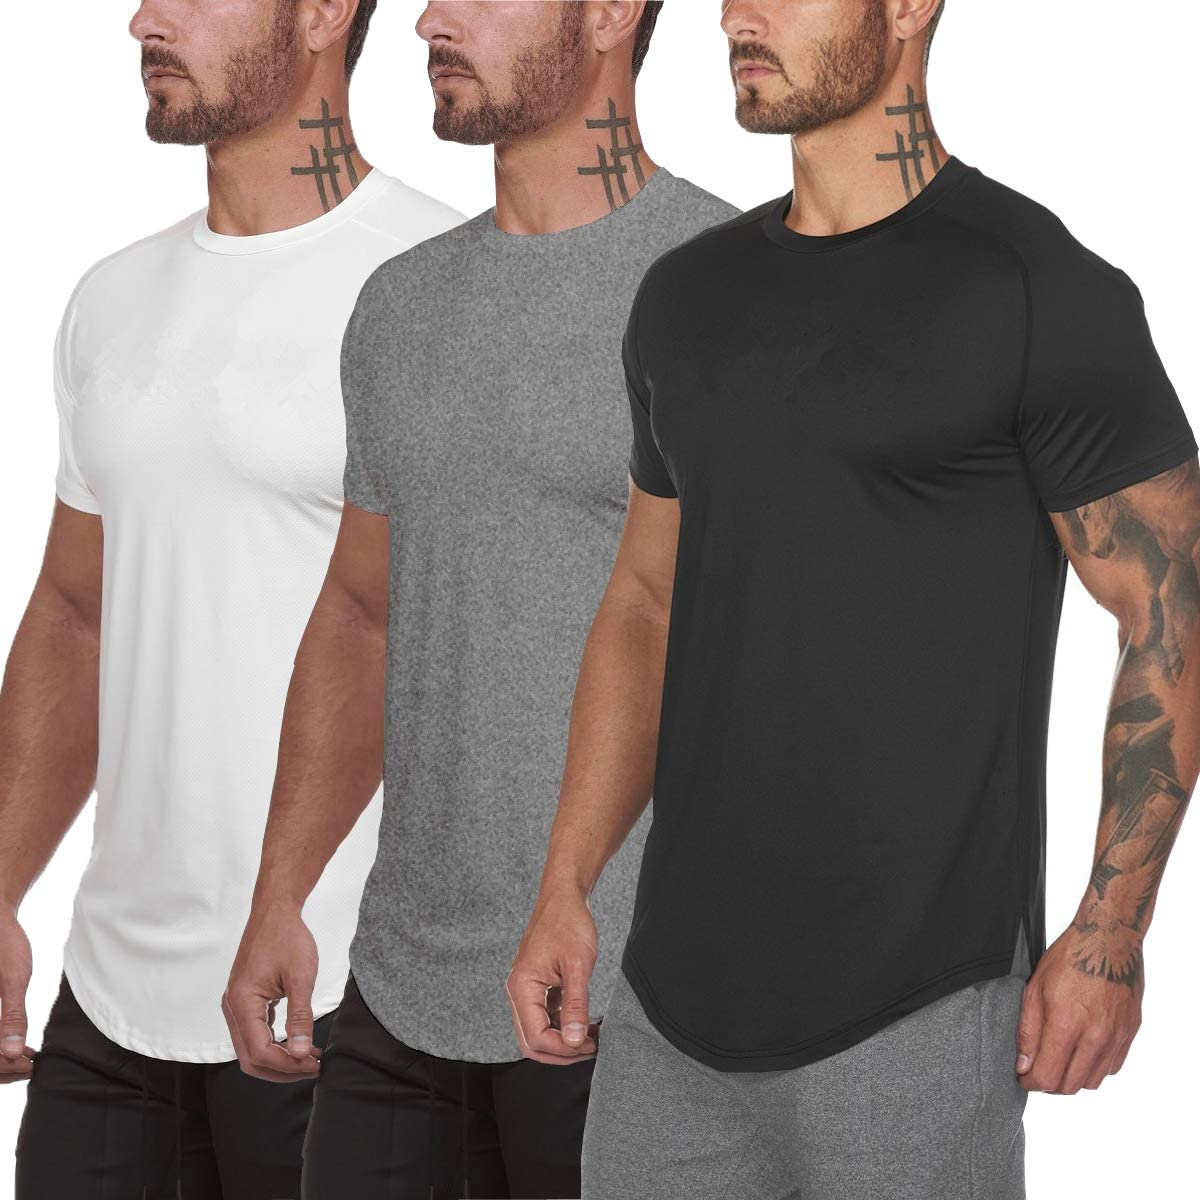 Muscle Killer 3 Pack Men's Gym Workout Bodybuilding Fitness Active Athletic T-Shirts Workout Casual Tee: Clothing